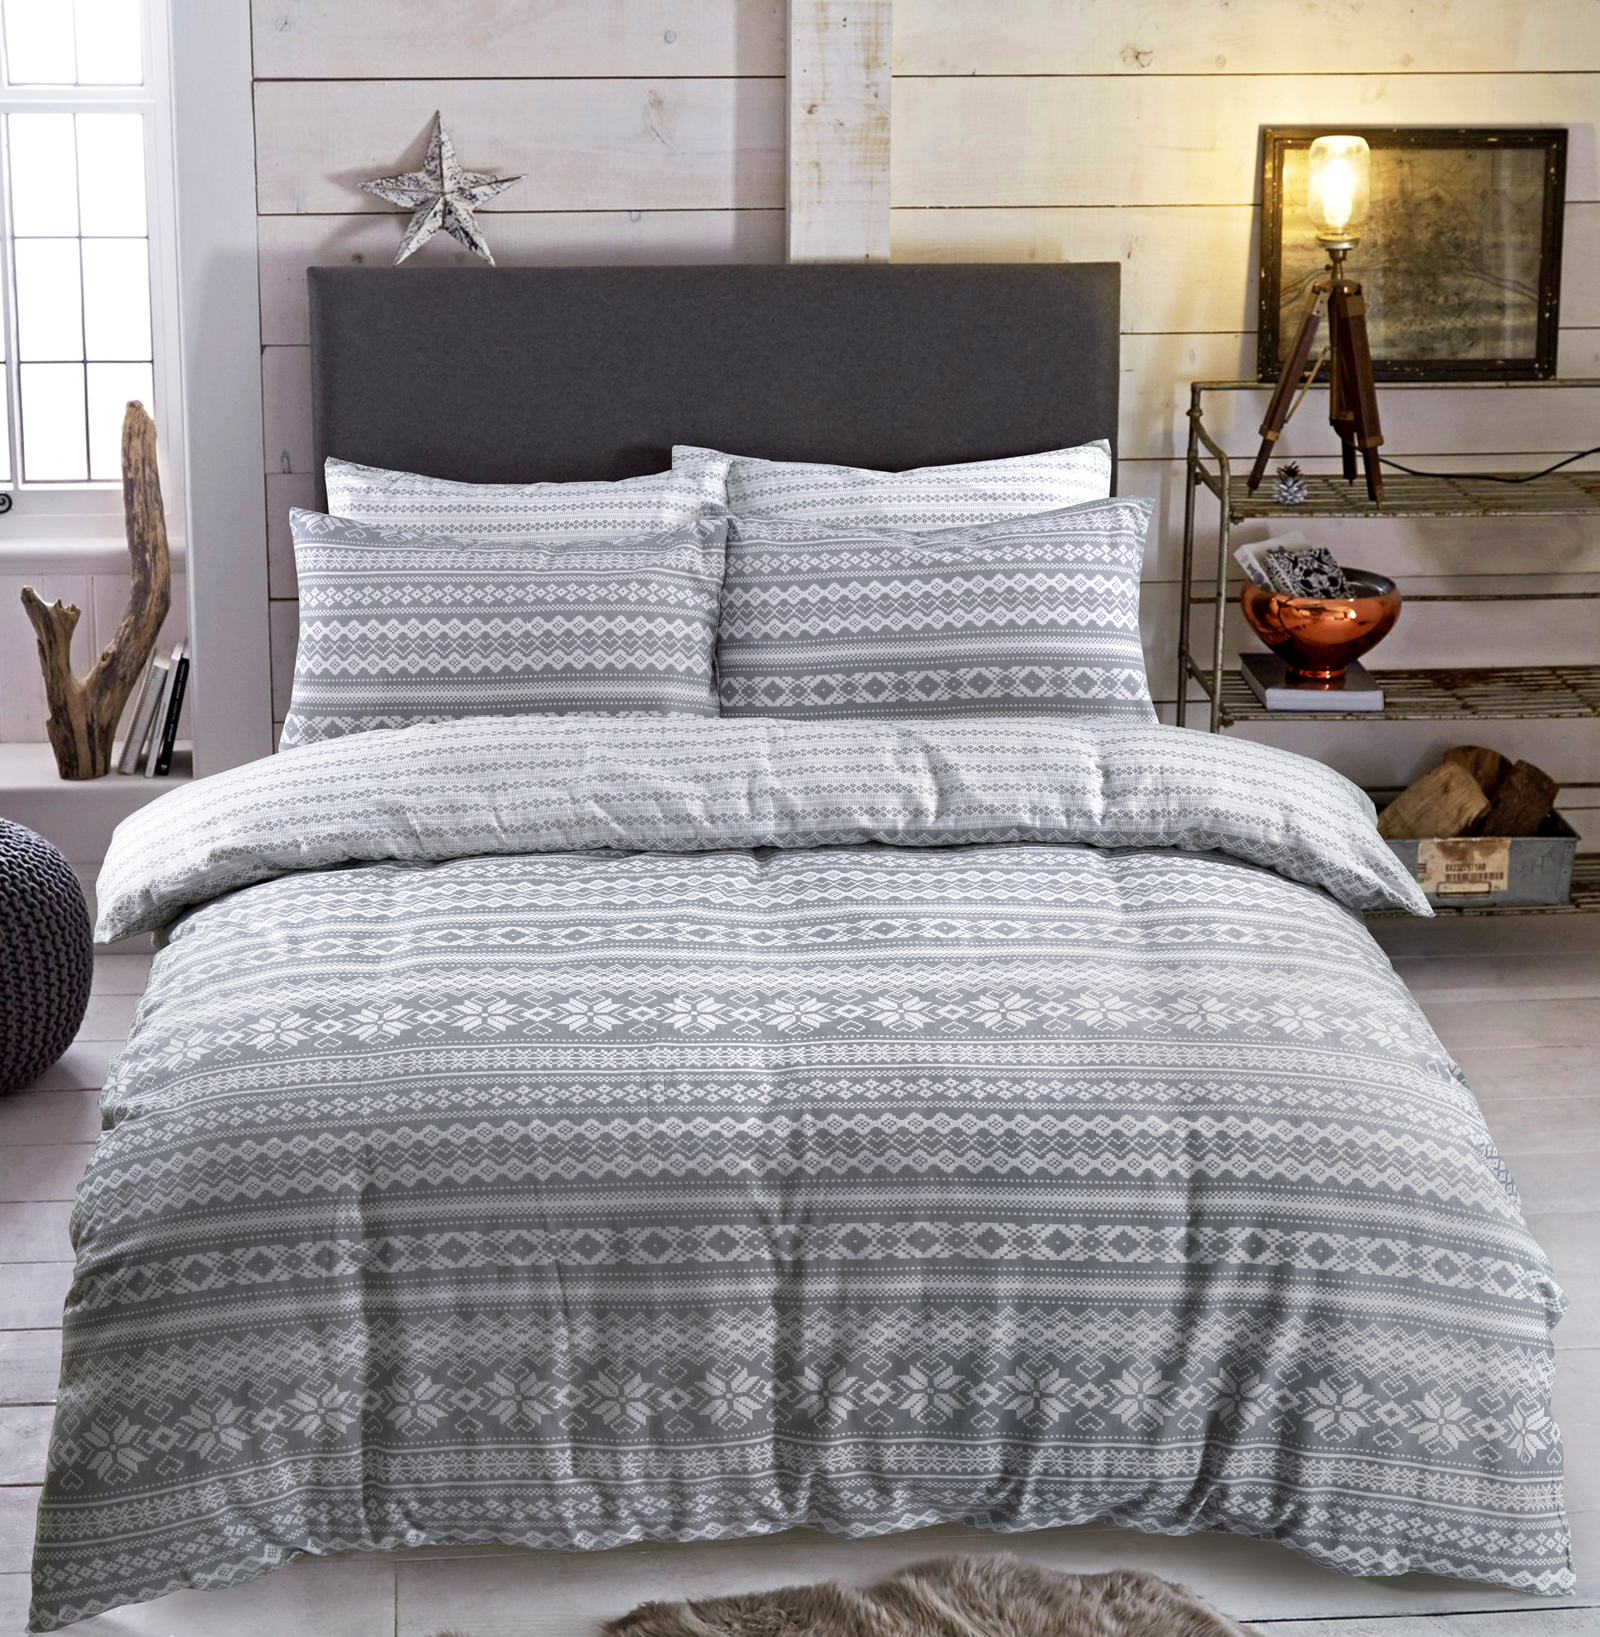 Fairisle Duvet Cover Set Wholesale Bedding Store De Lavish